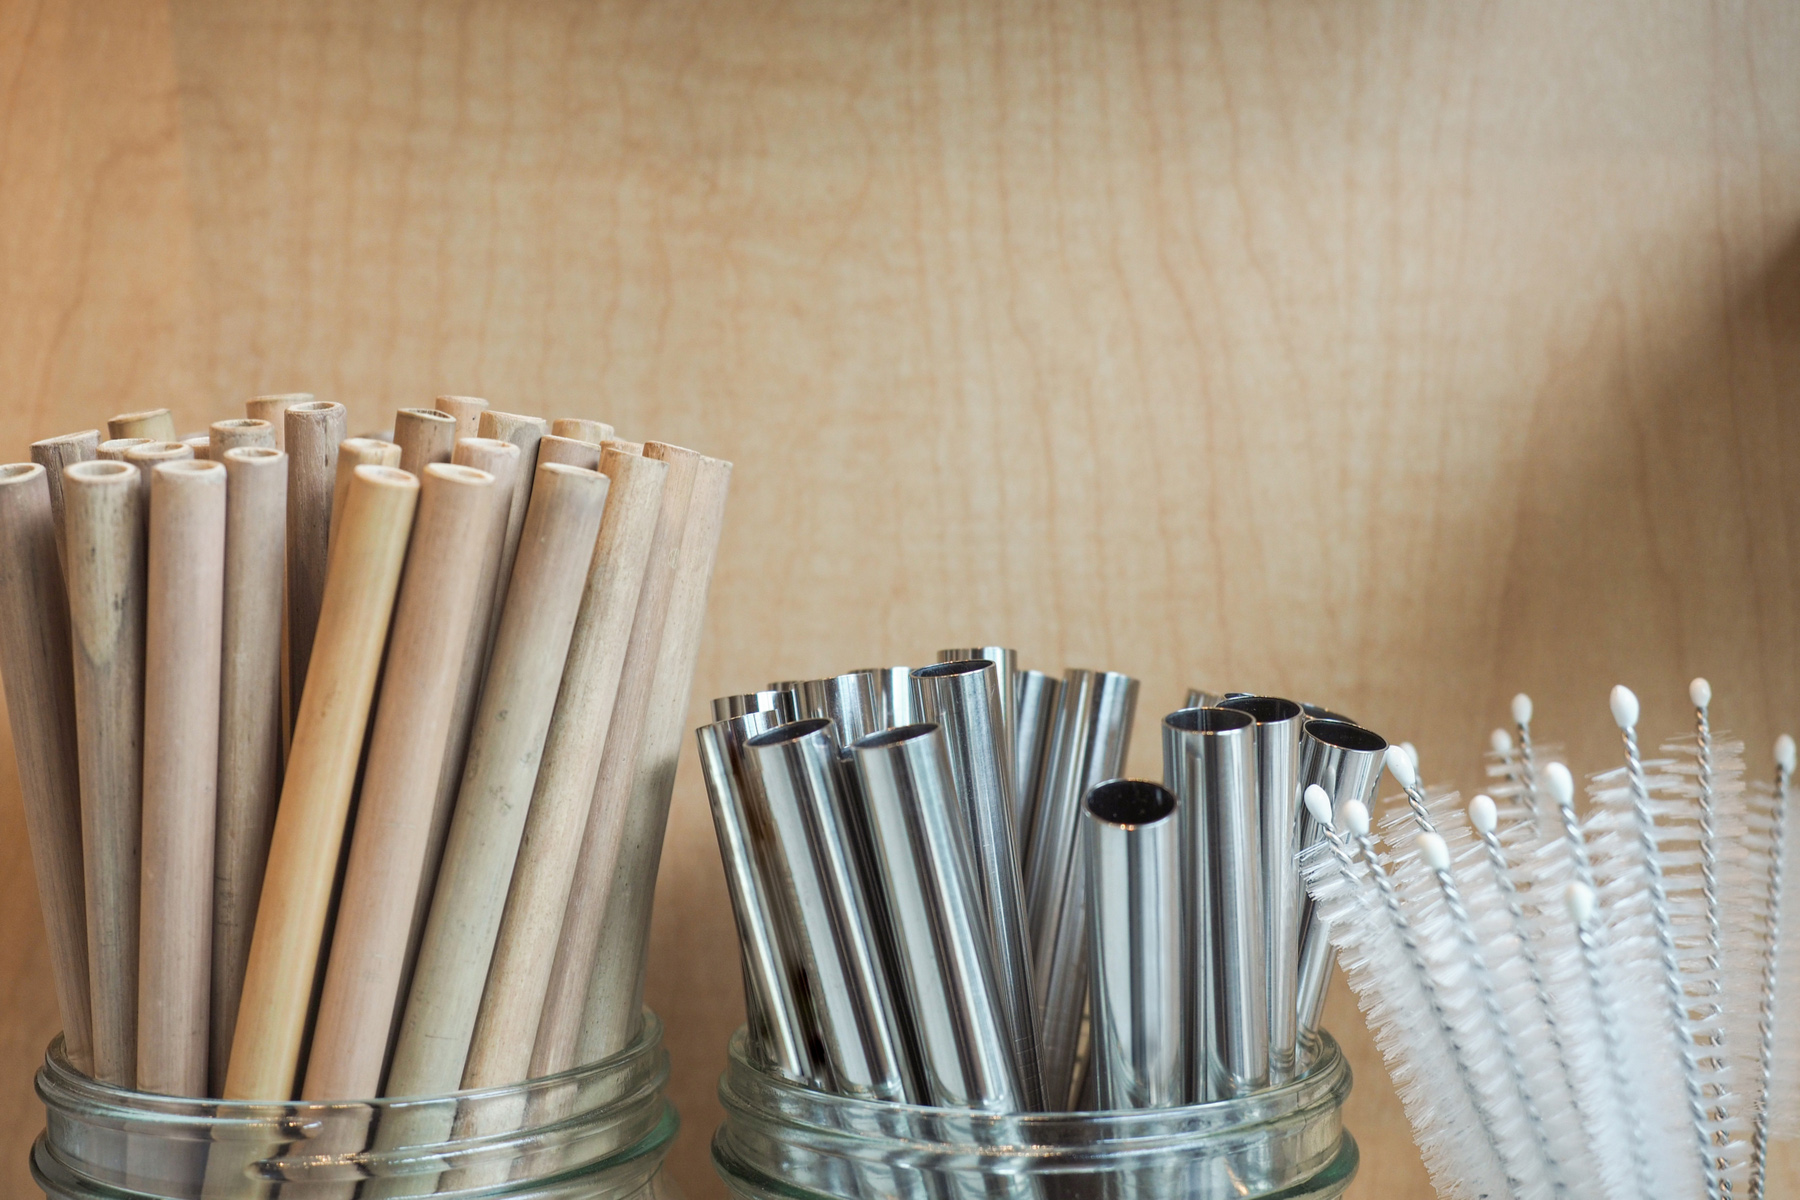 Bamboo and stainless steel straws